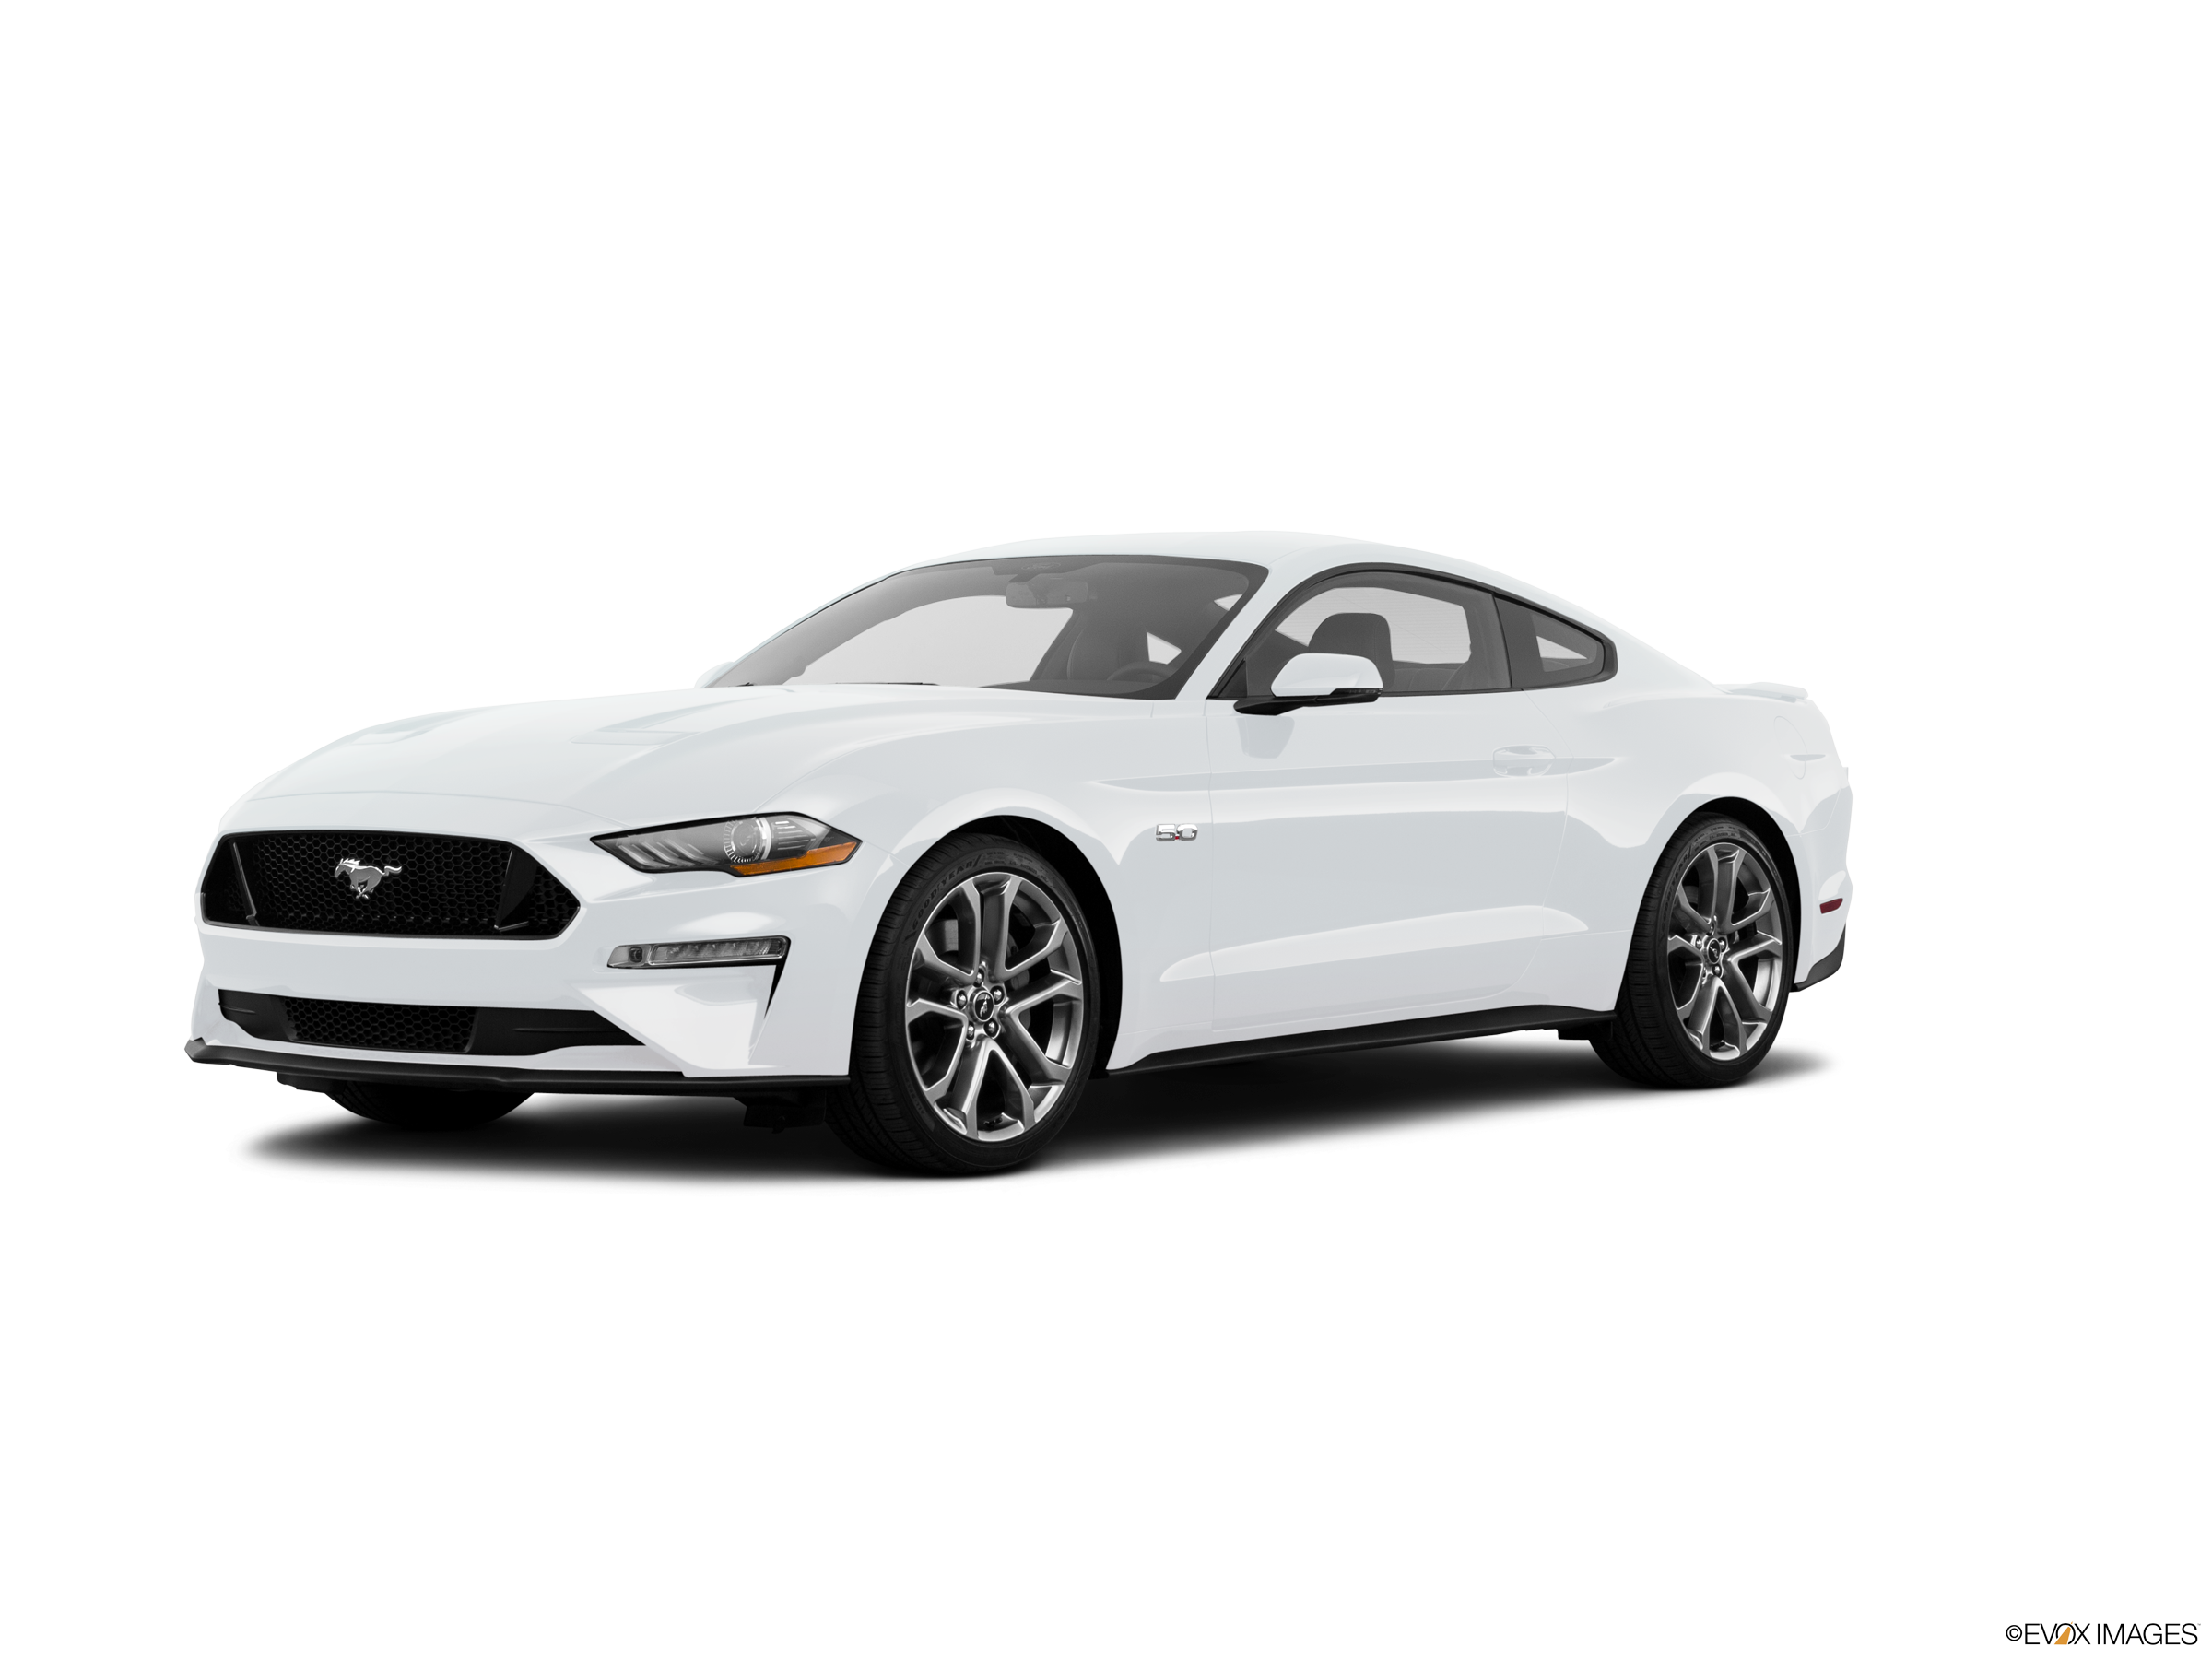 Highest Horsepower Coupes of 2019 - 2019 Ford Mustang